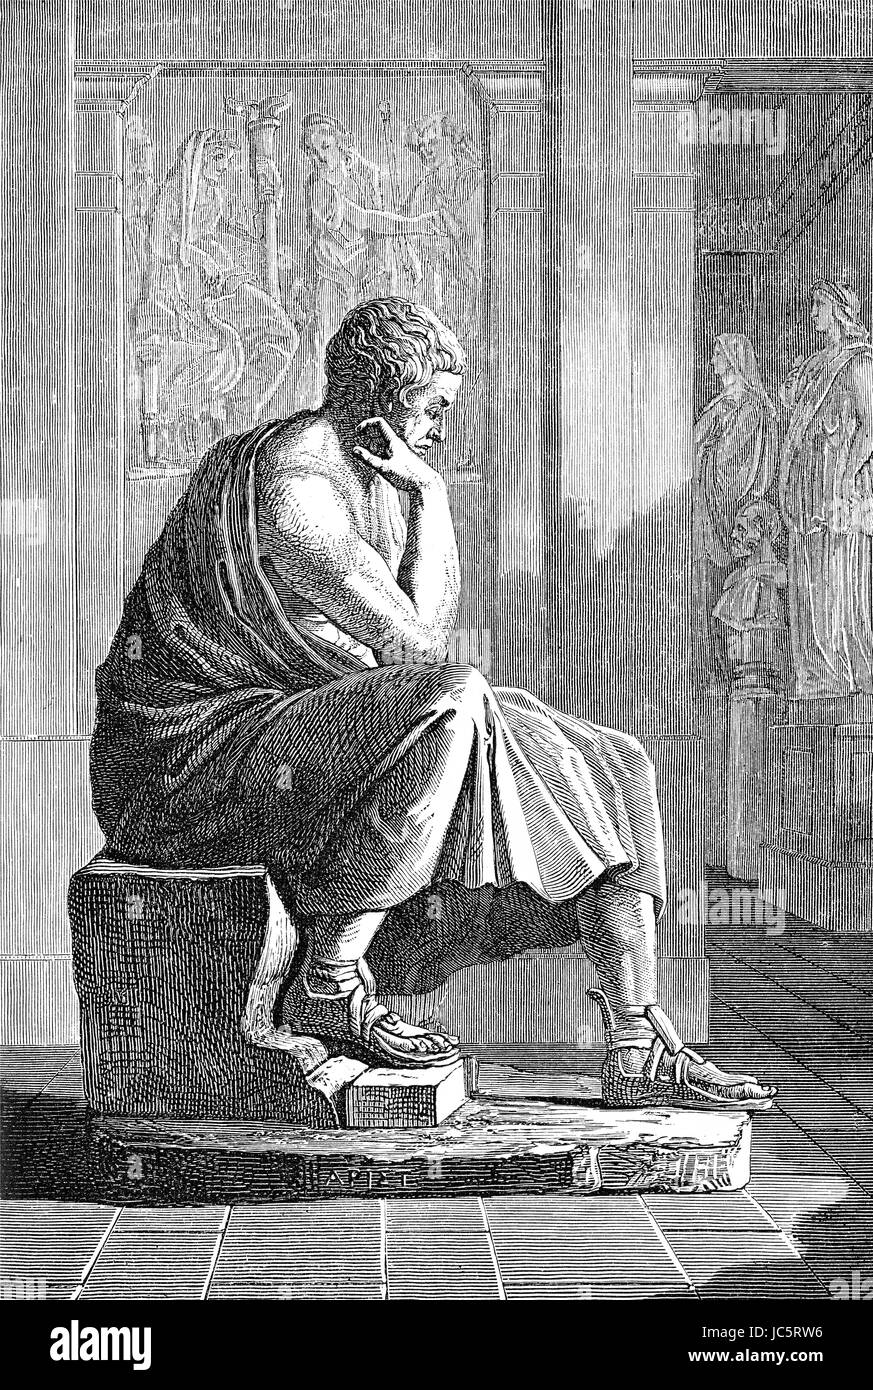 Aristotle, 384-322 BC, an ancient Greek philosopher and scientist - Stock Image